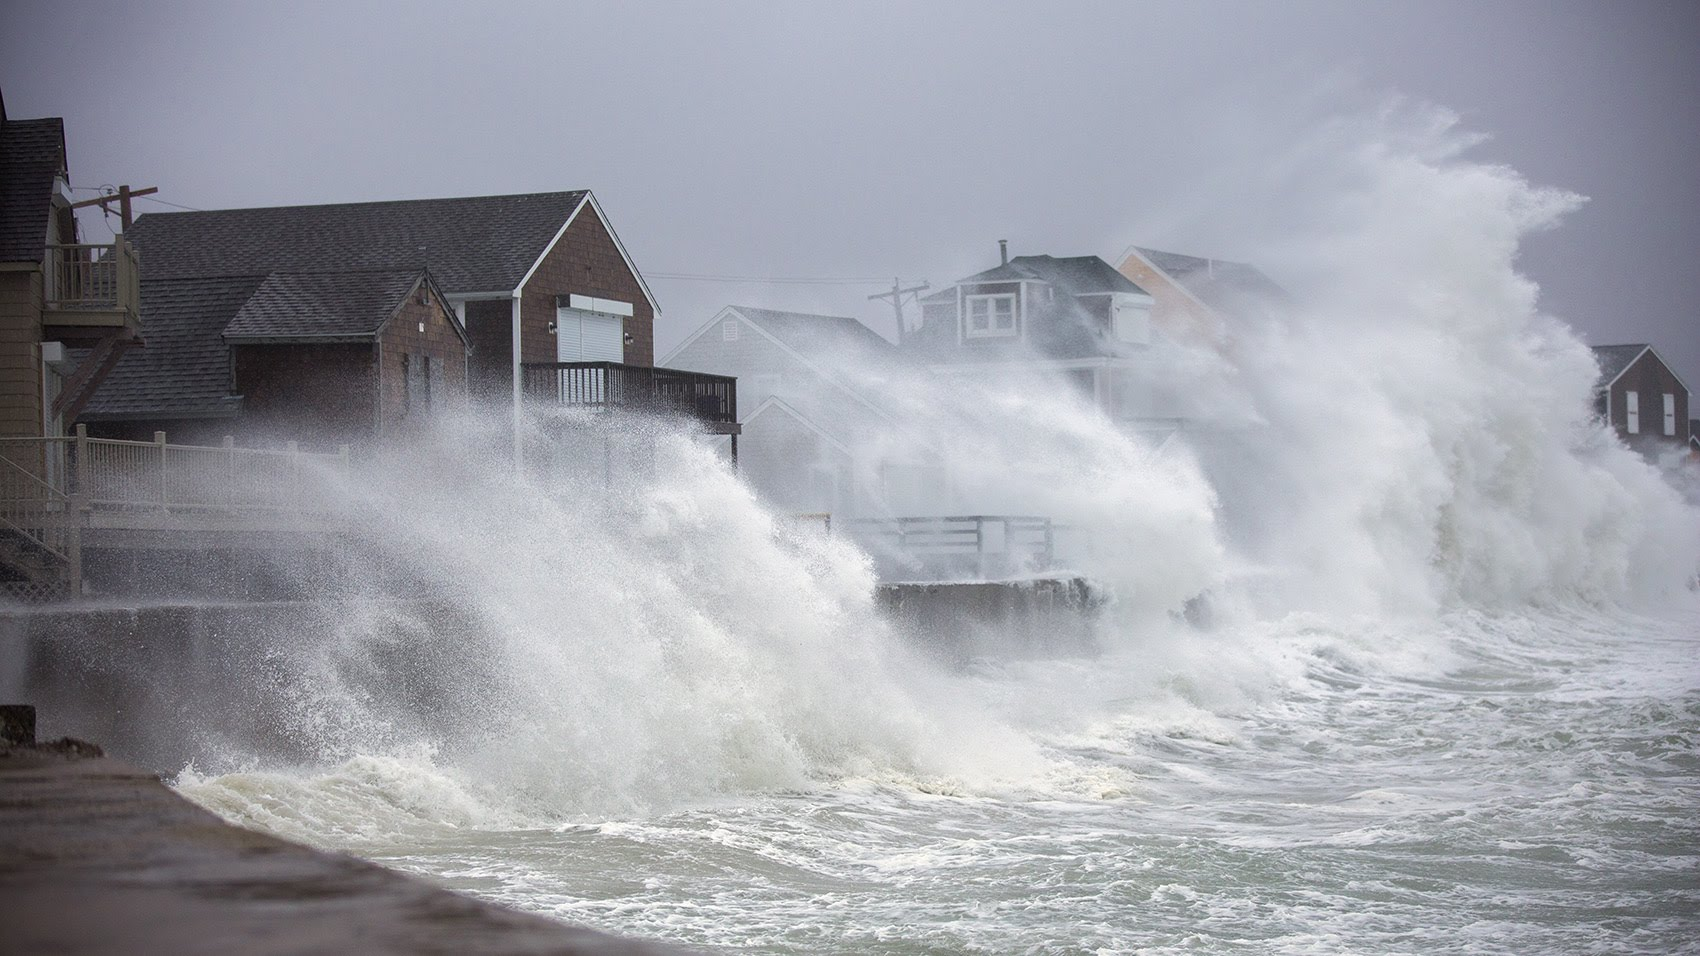 Houses along Lighthouse Road in Scituate are engulfed by waves crashing off the seawall on Friday. (Jesse Costa/WBUR)